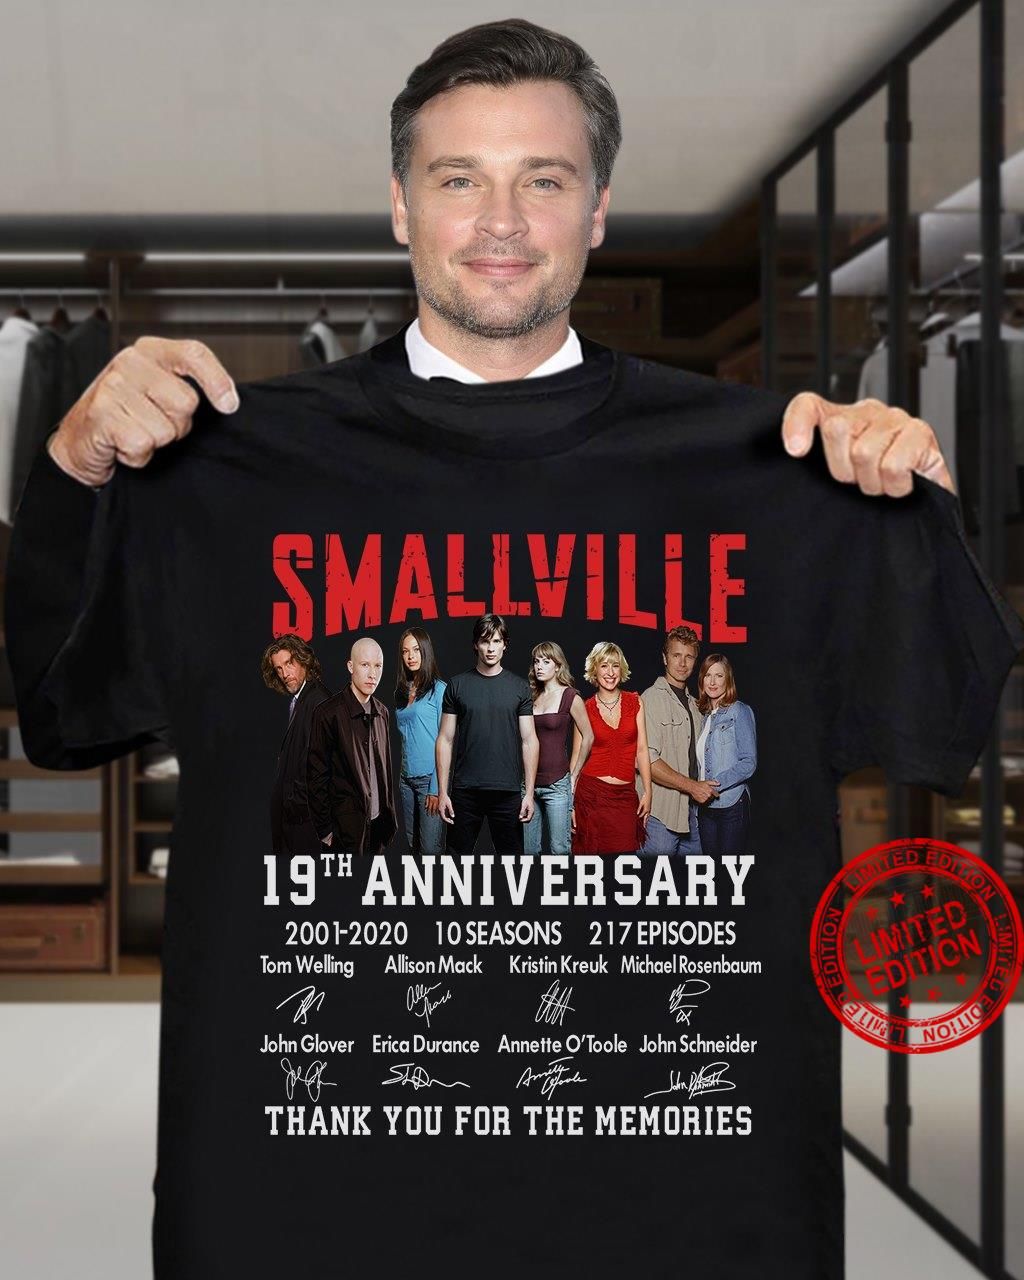 Smallville 19th Anniversary 2001-2020 10 Seasons 217 Episodes Thank You For The Memories Shirt